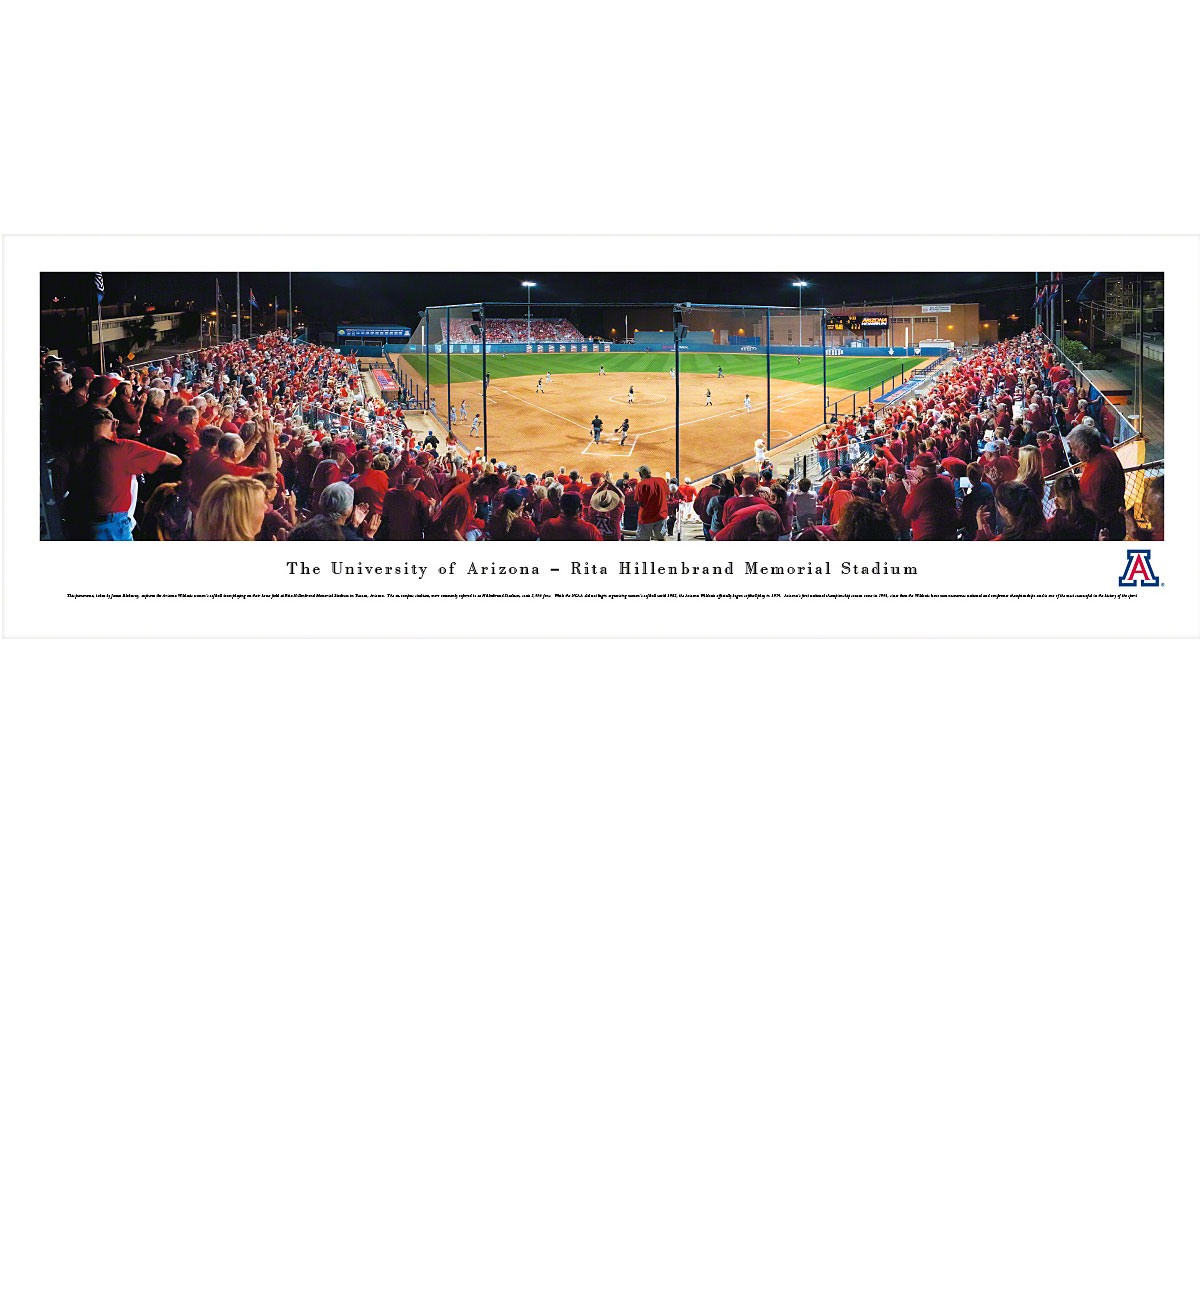 Cover Image For Arizona Panoramic Rita Hillenbrand Memorial Softball Stadium